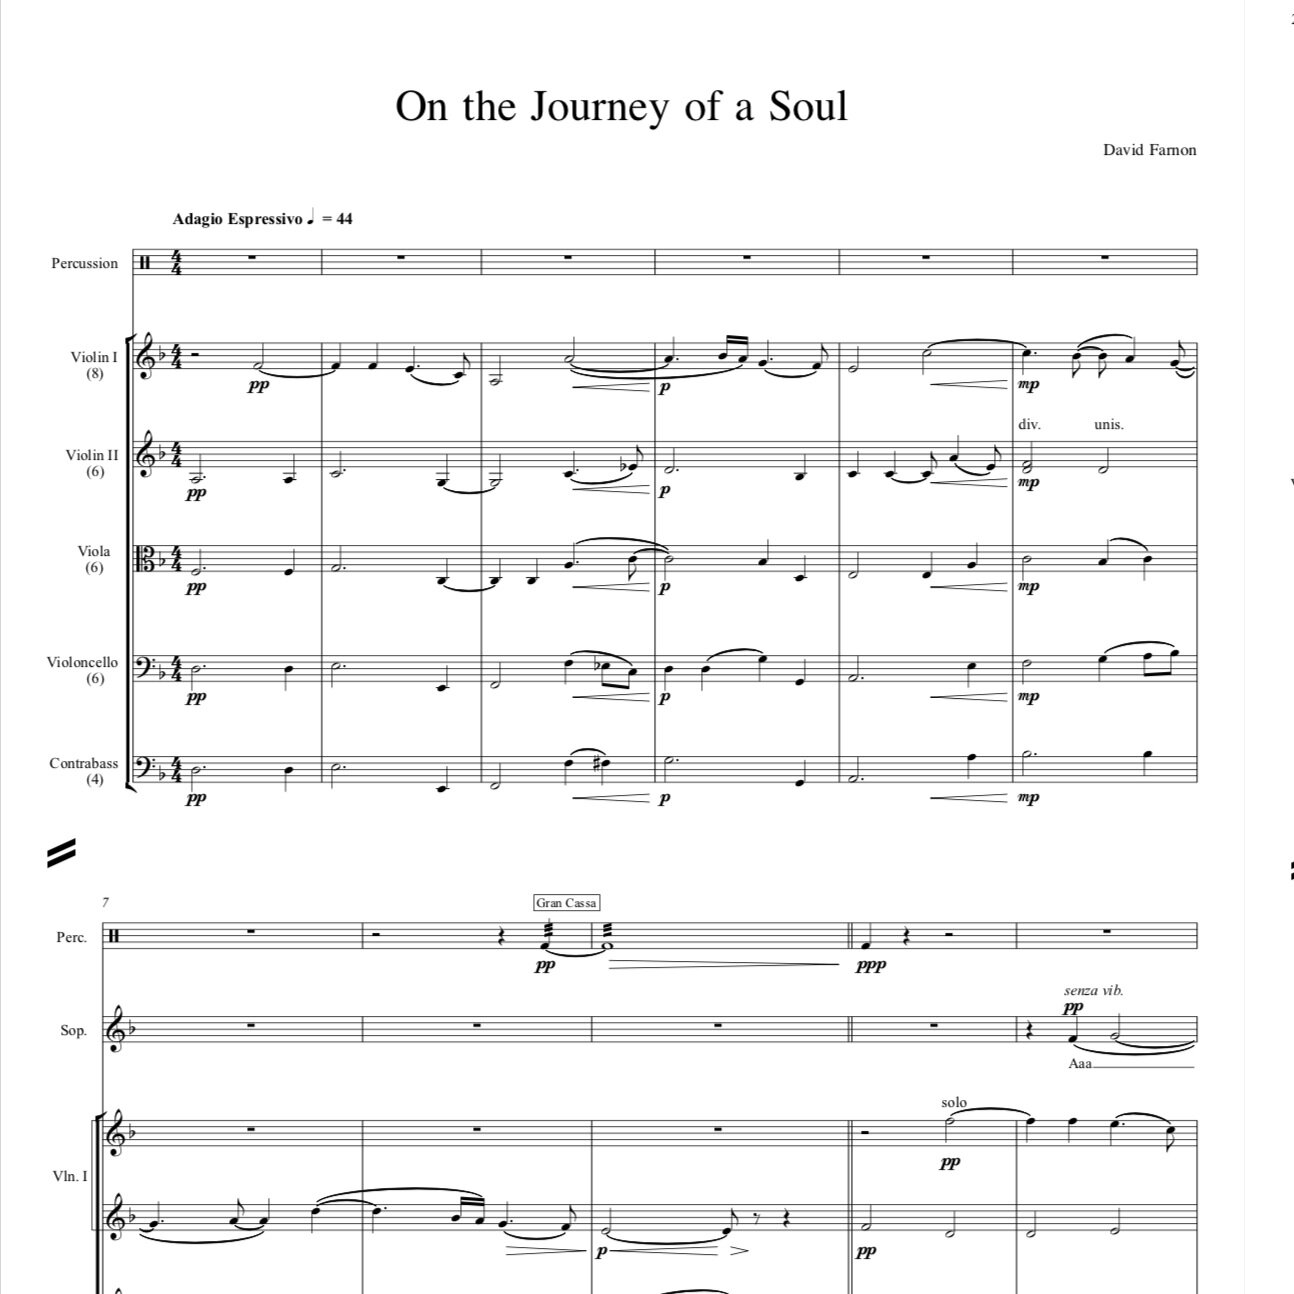 David Farnon - On the Journey of a Soul (2018) -